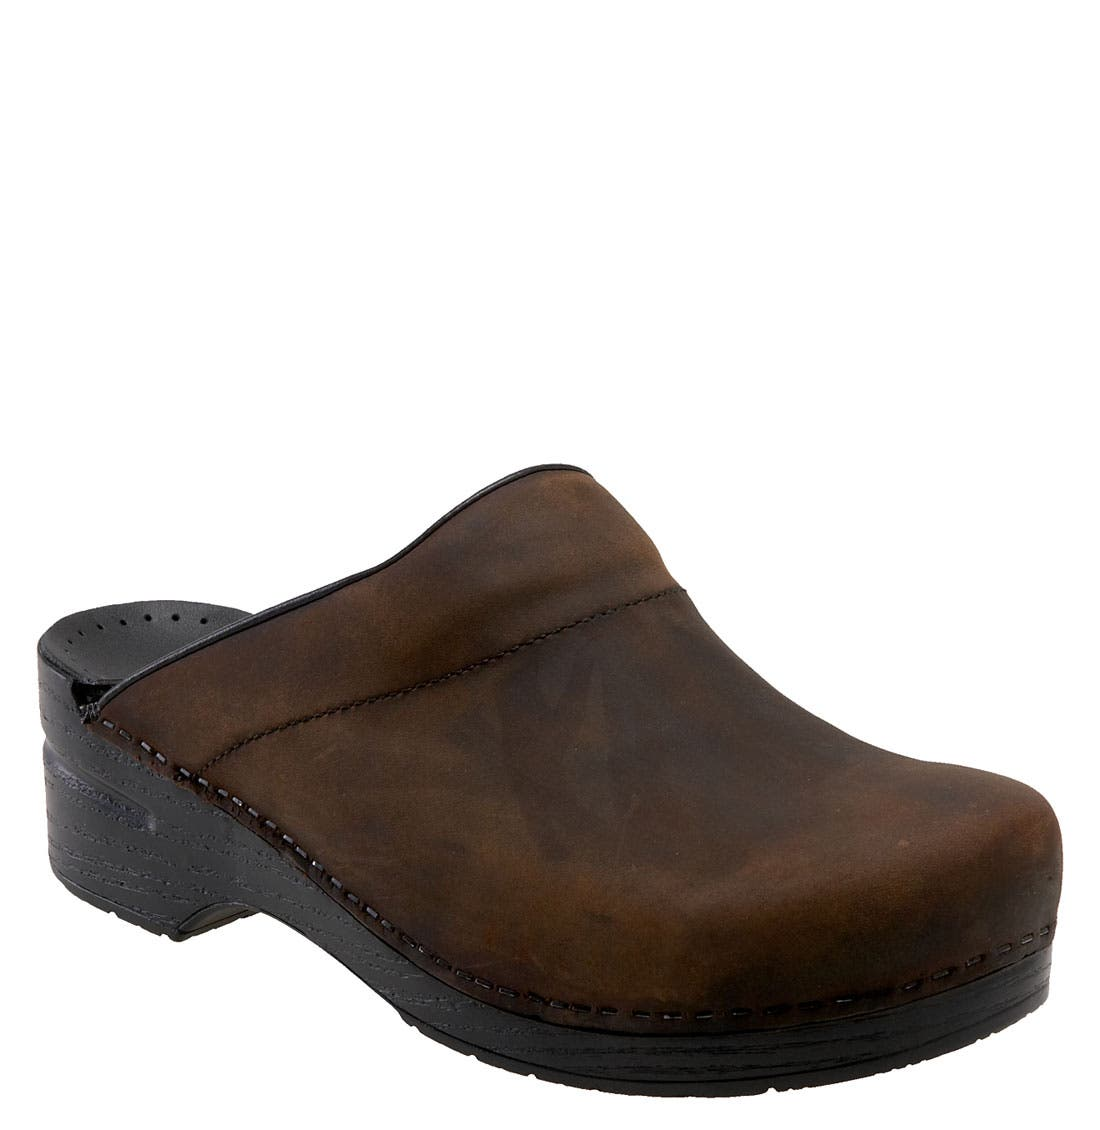 dansko inc Dansko® believes that your feet are the foundation of your life healthy feet, healthy body, healthy planet that is why every collection from casual to professional to pro xp is based on the comfort principles of the clog to maximize all-day comfort.